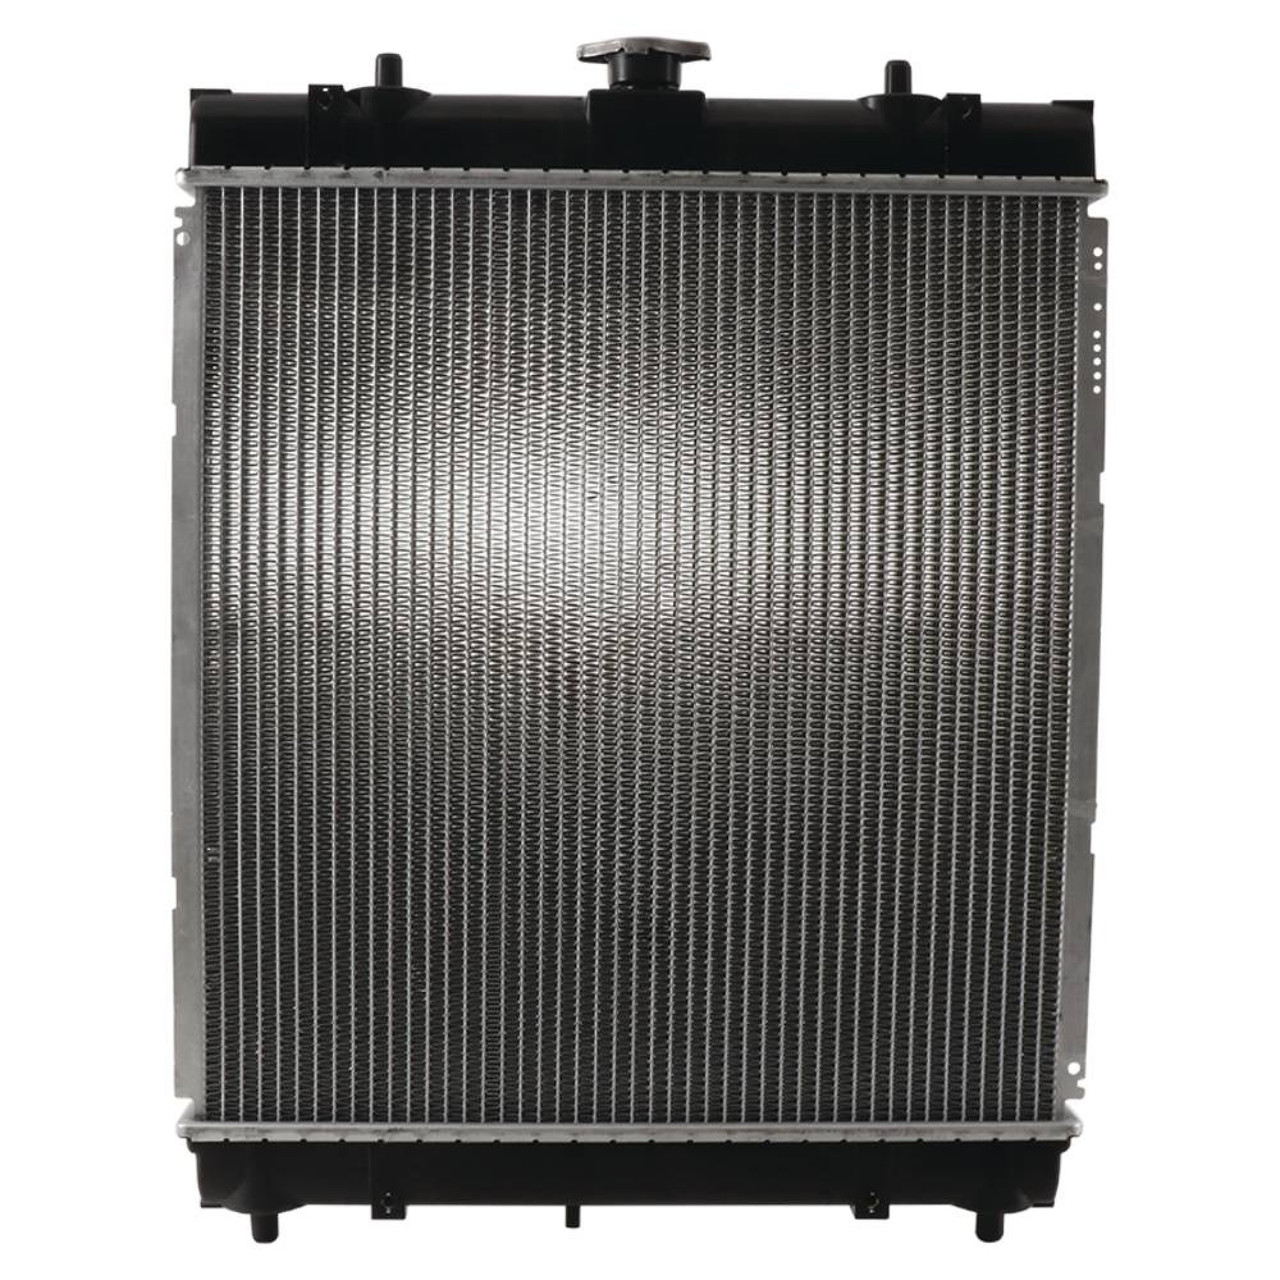 L4400F Complete Tractor New 1906-6317 Radiator Replacement For Kubota L4400DT L4400H TC230-99600